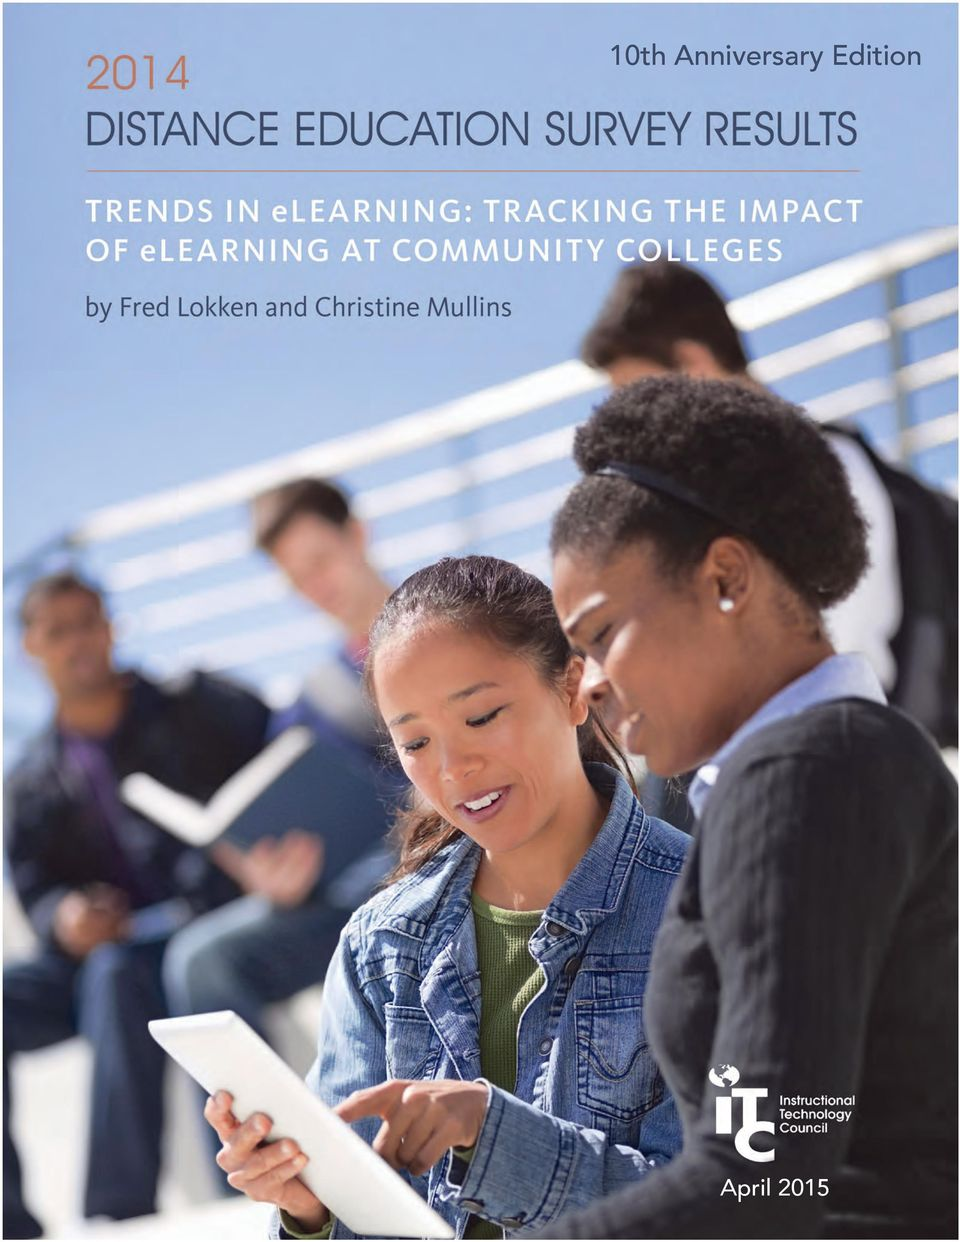 IMPACT OF elearning AT